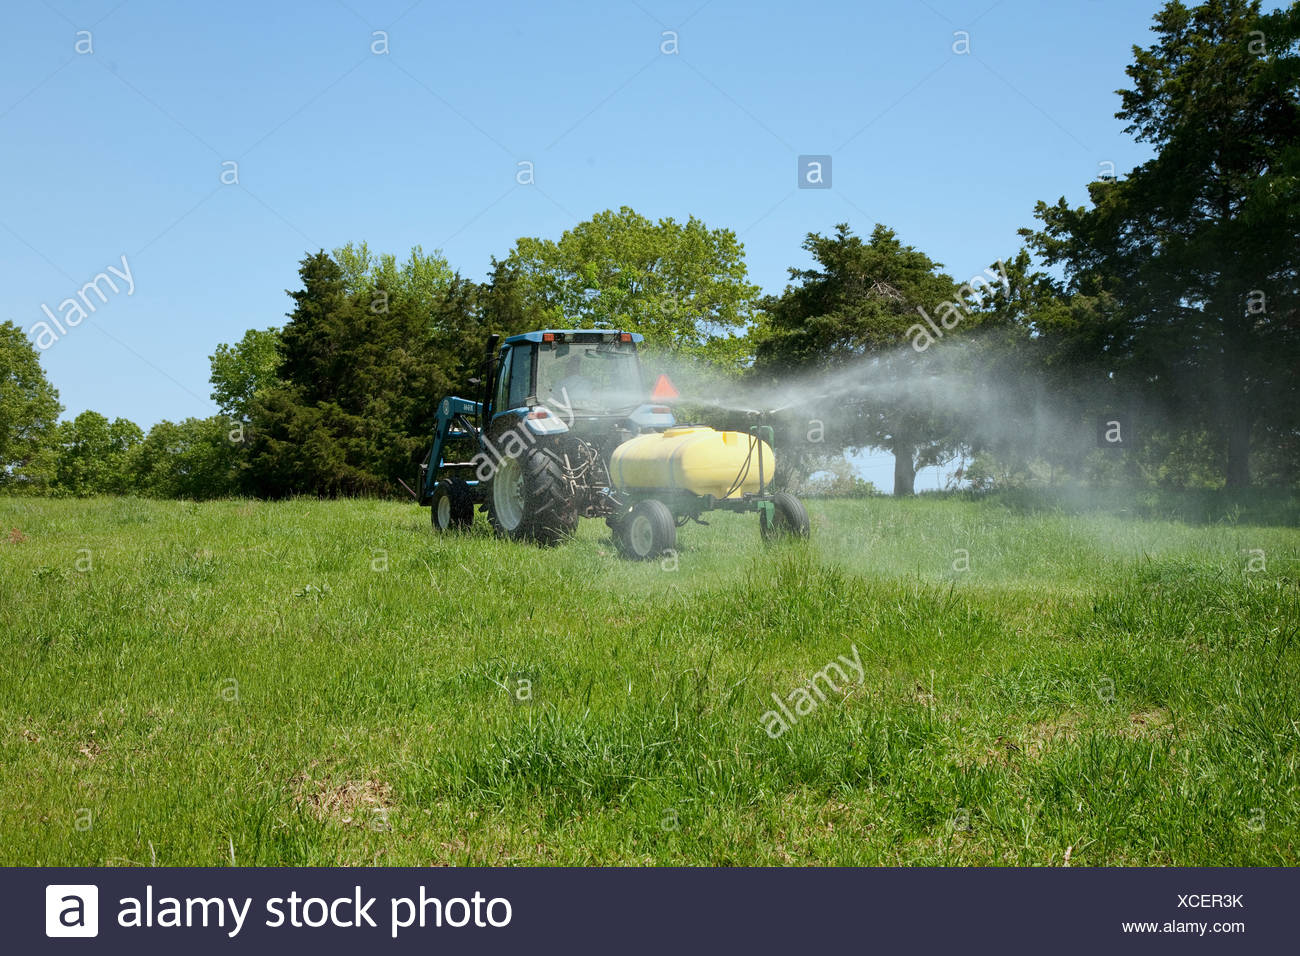 Spraying herbicide on a pasture used for grazing beef cattle. The herbicide is to control broadleaf weeds / Arkansas, USA. - Stock Image